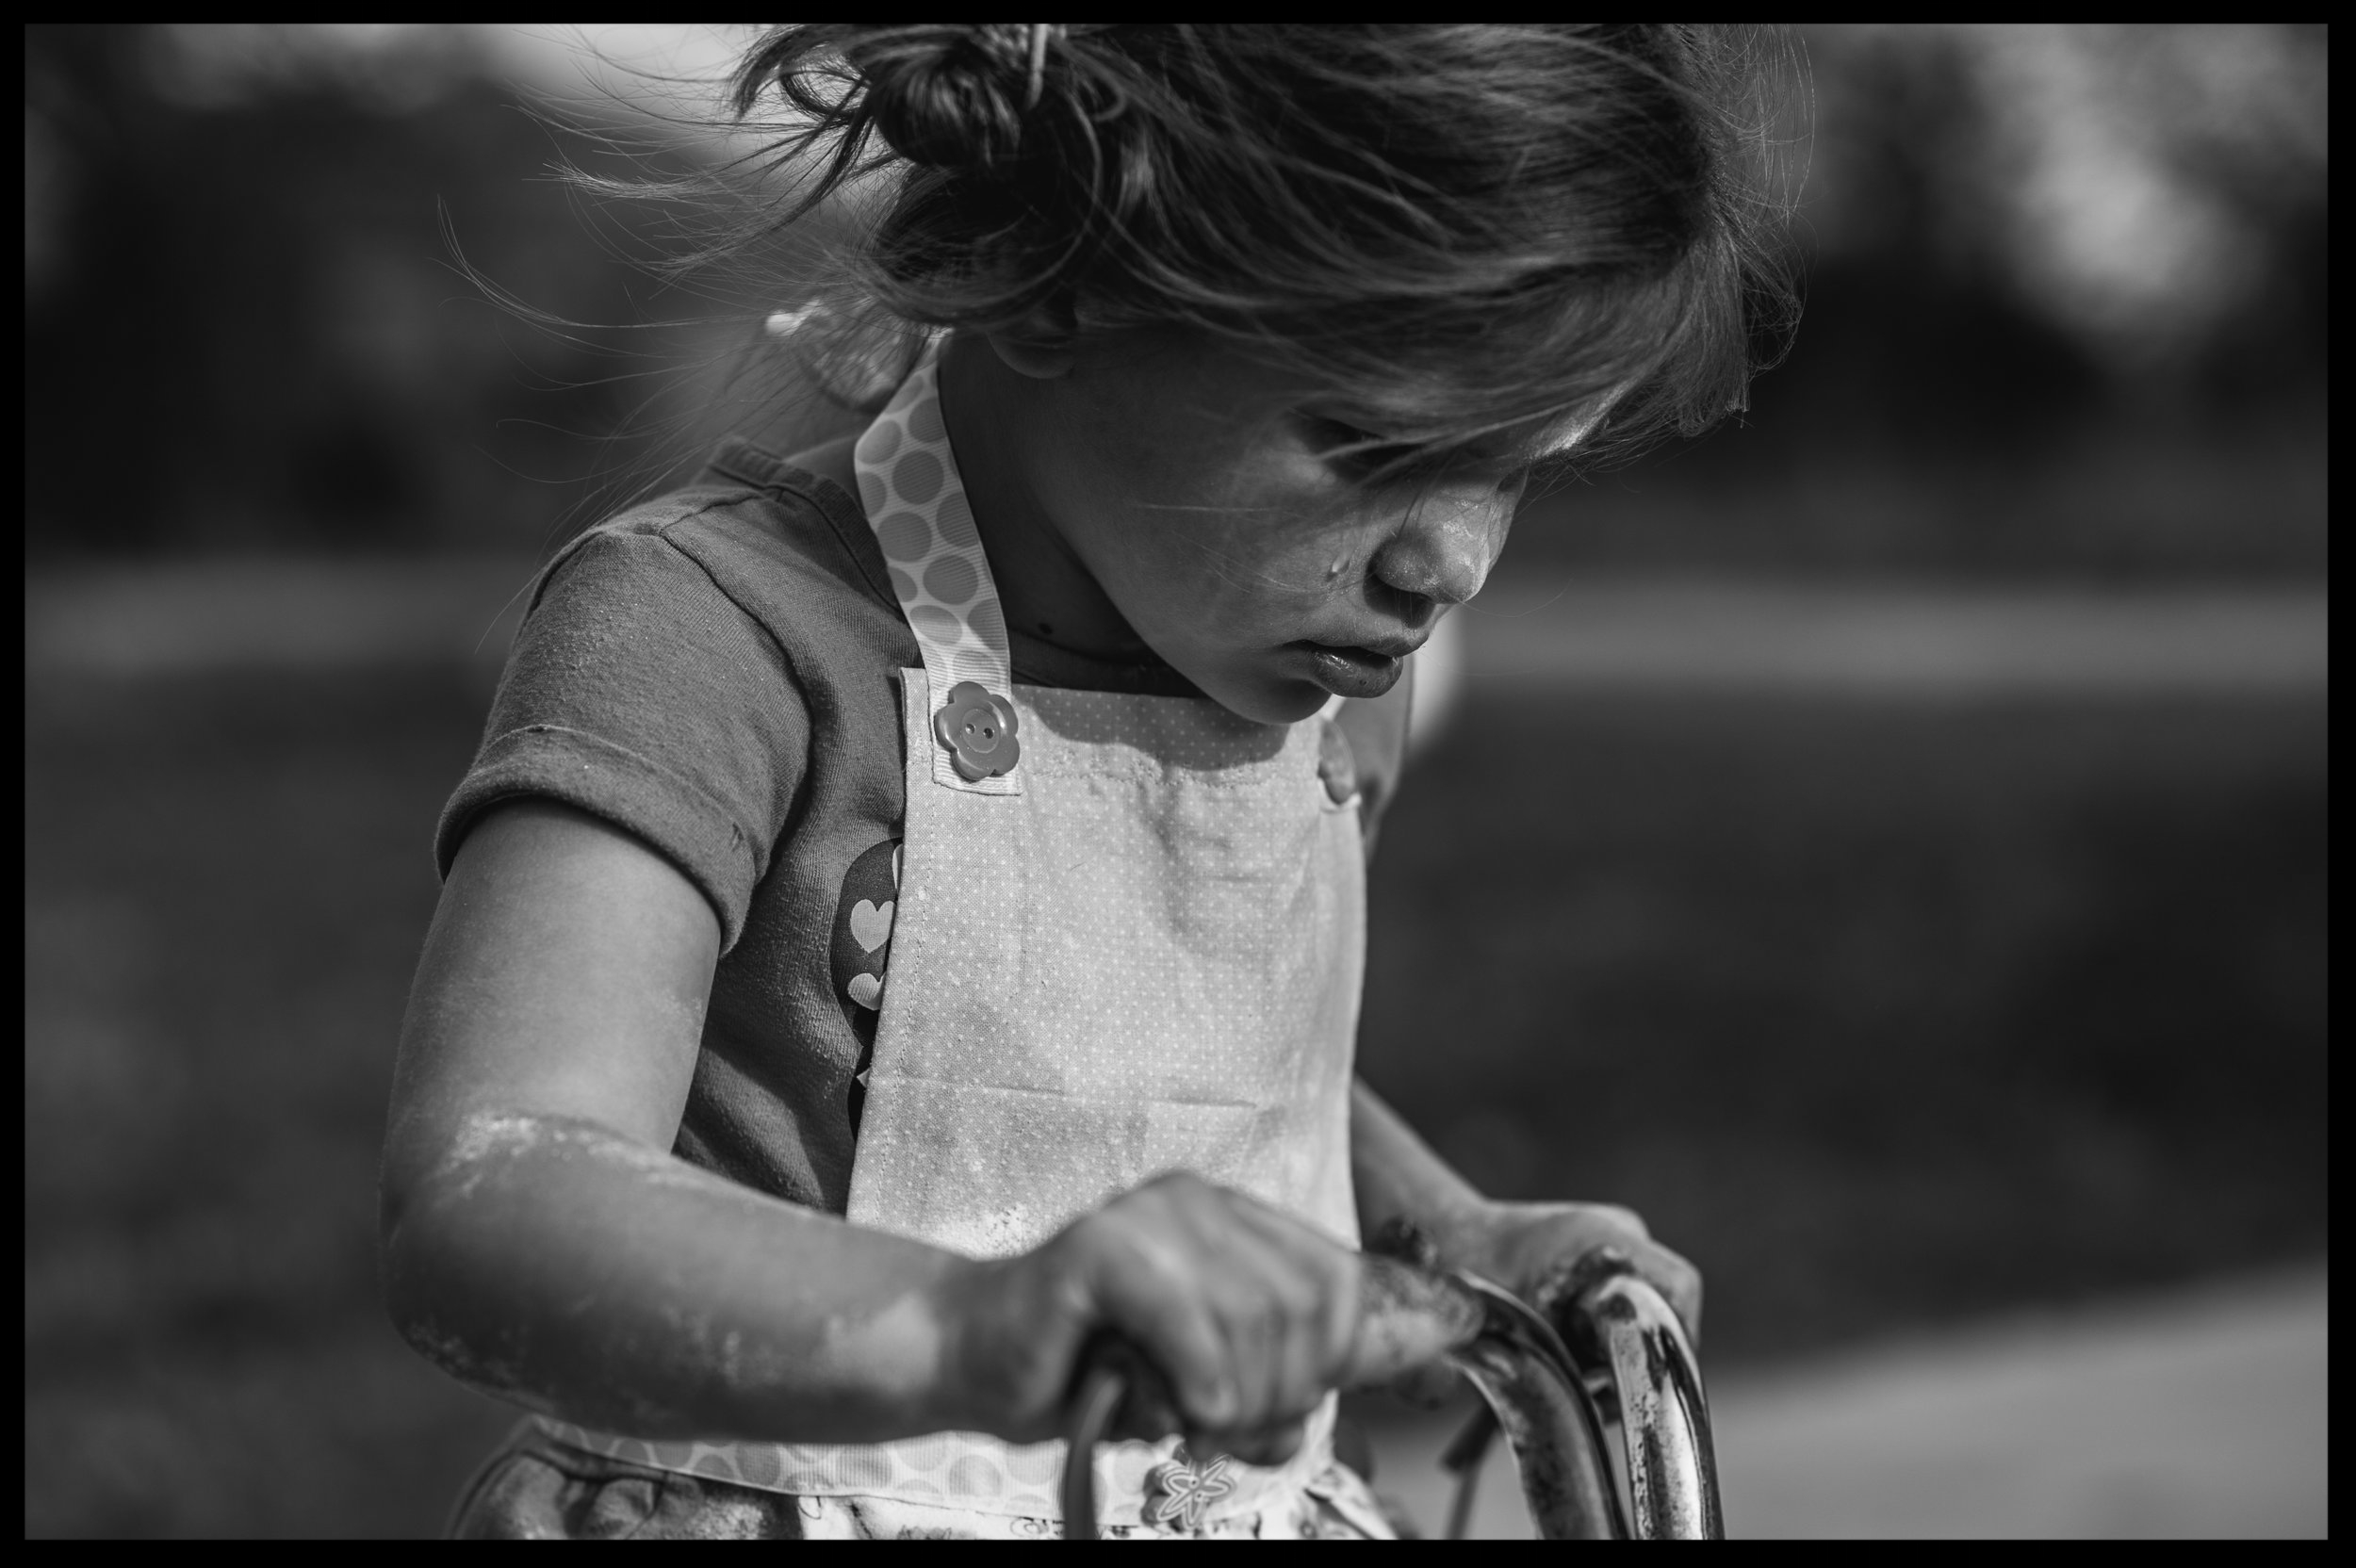 Little girl on a bike crying, black and white